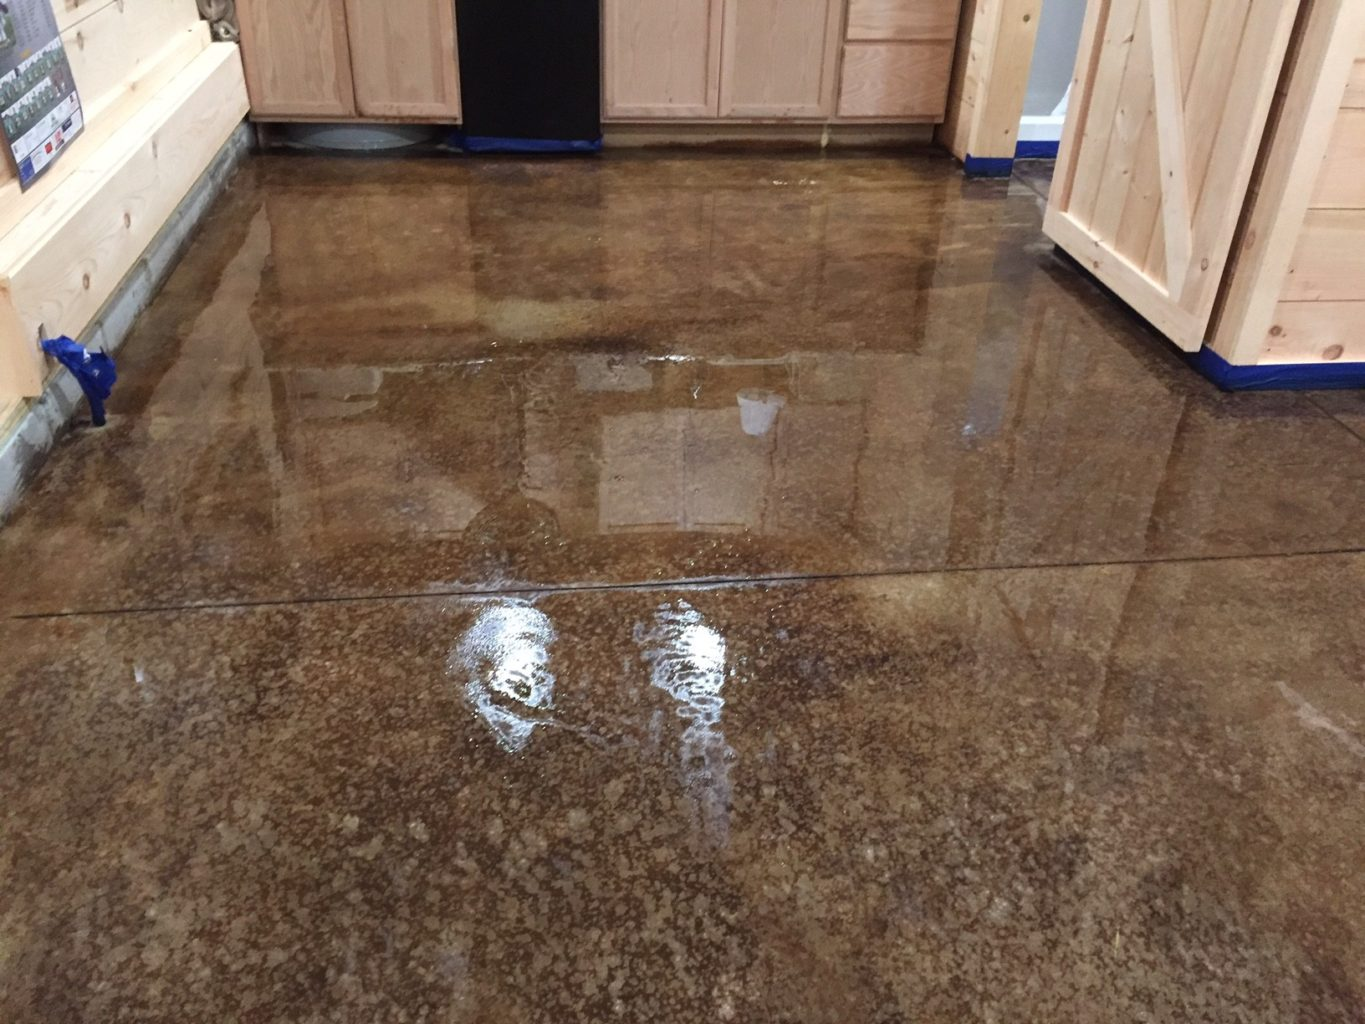 Acid staining our concrete floors an expensive look at for Concrete floors in house